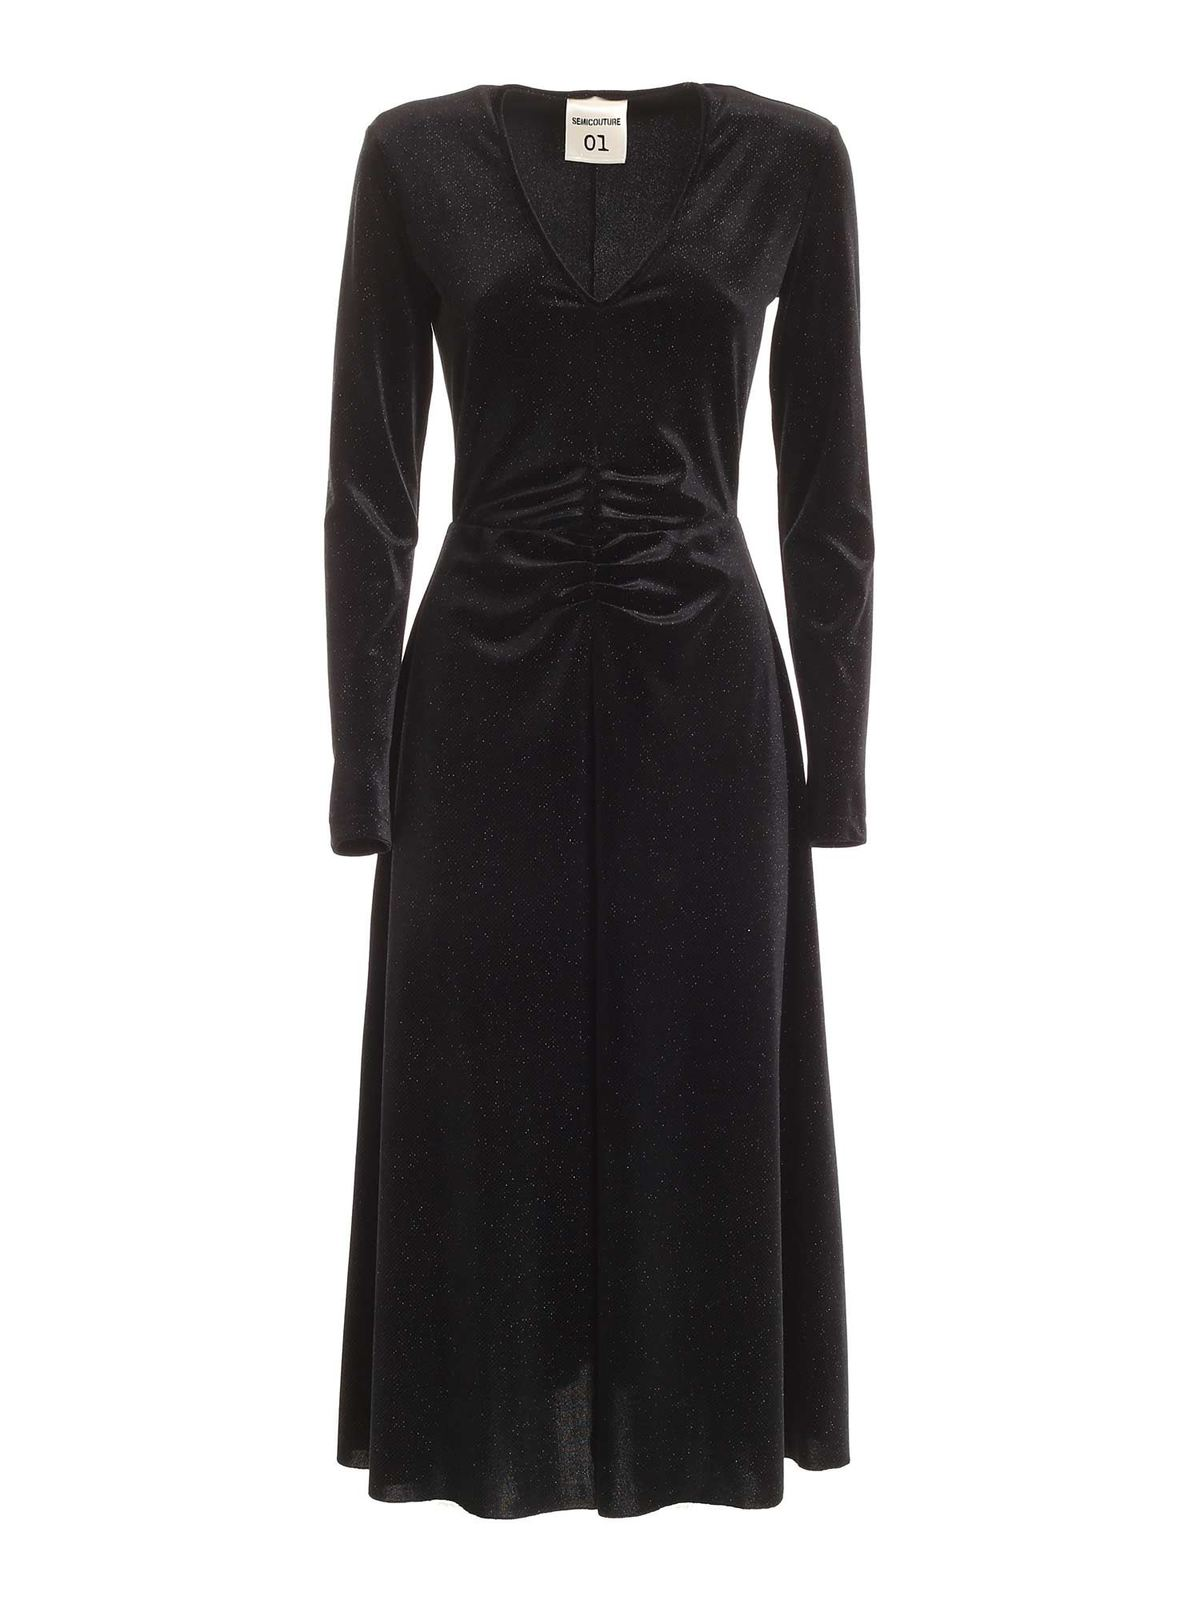 Semicouture PEGGY VELVET DRESS IN BLACK